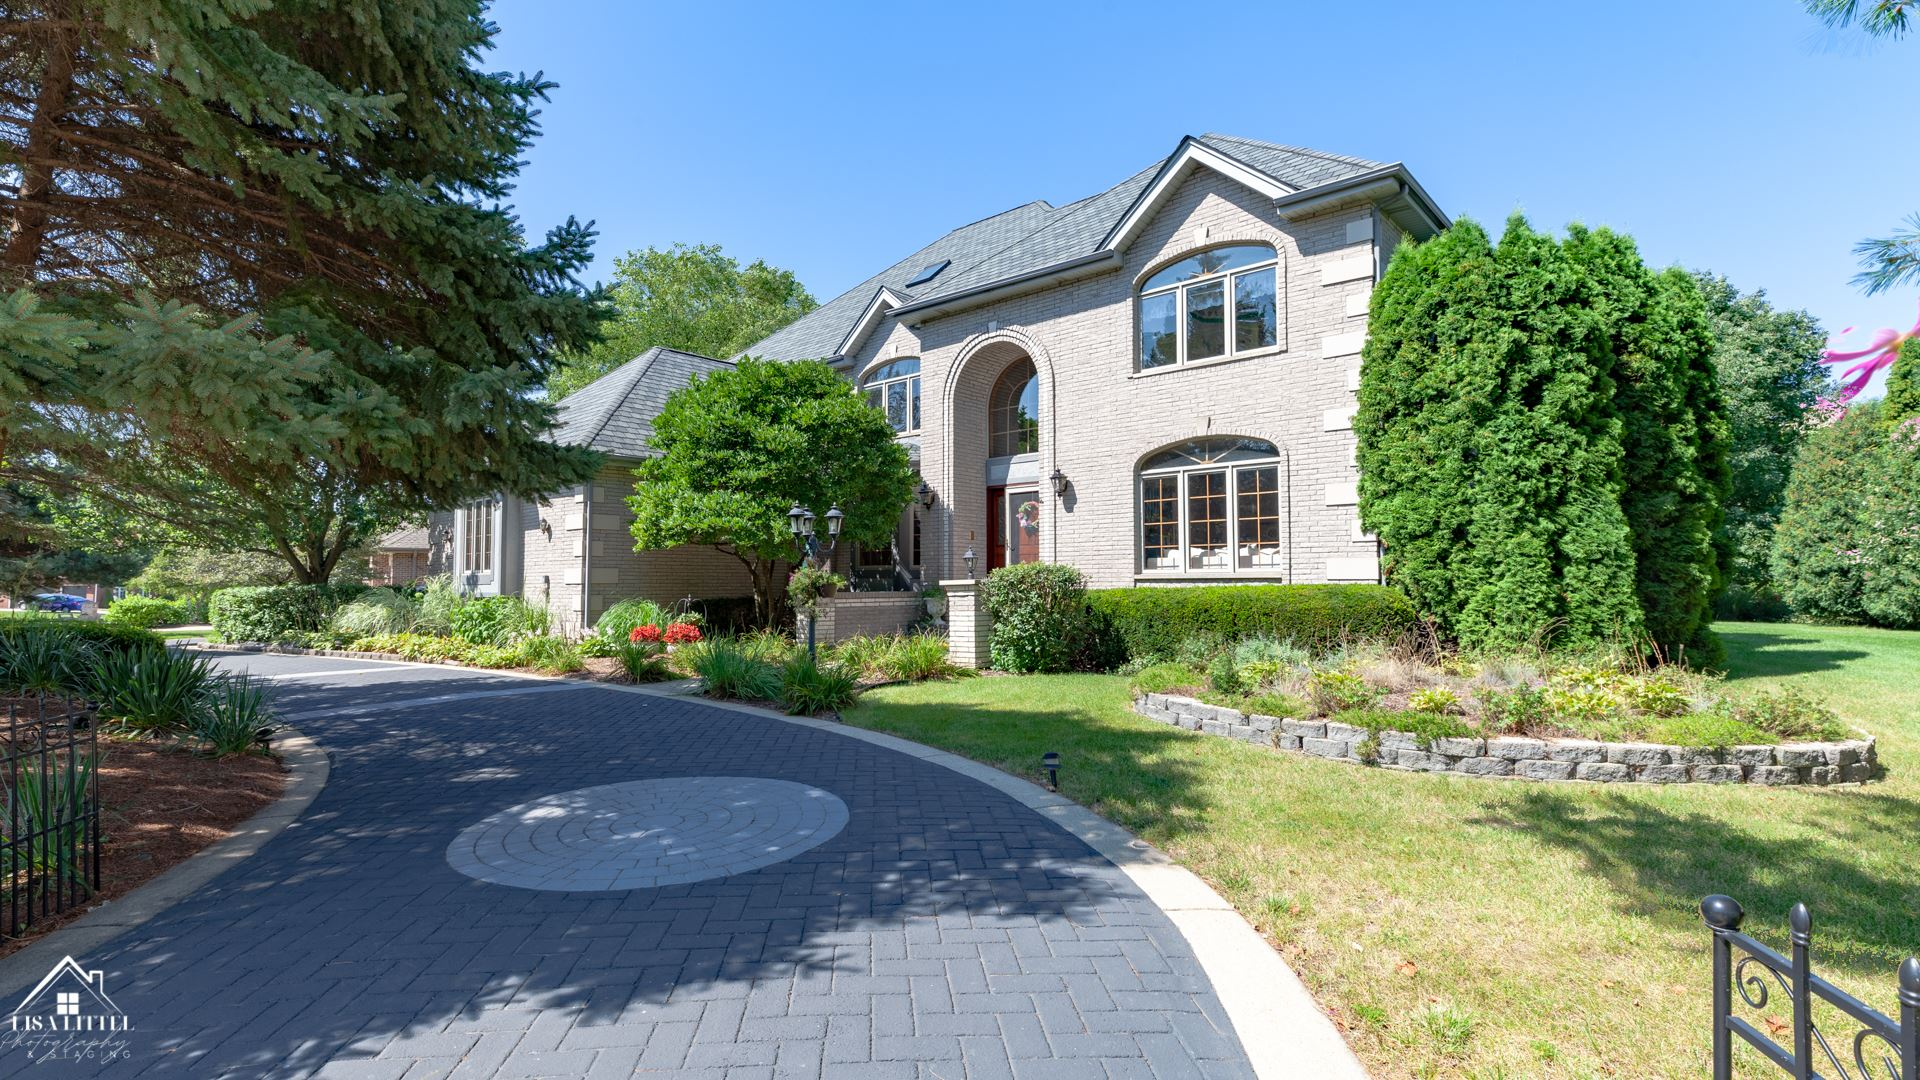 12422 Anand Brook Drive, Orland Park, IL 60467 - #: 11195718